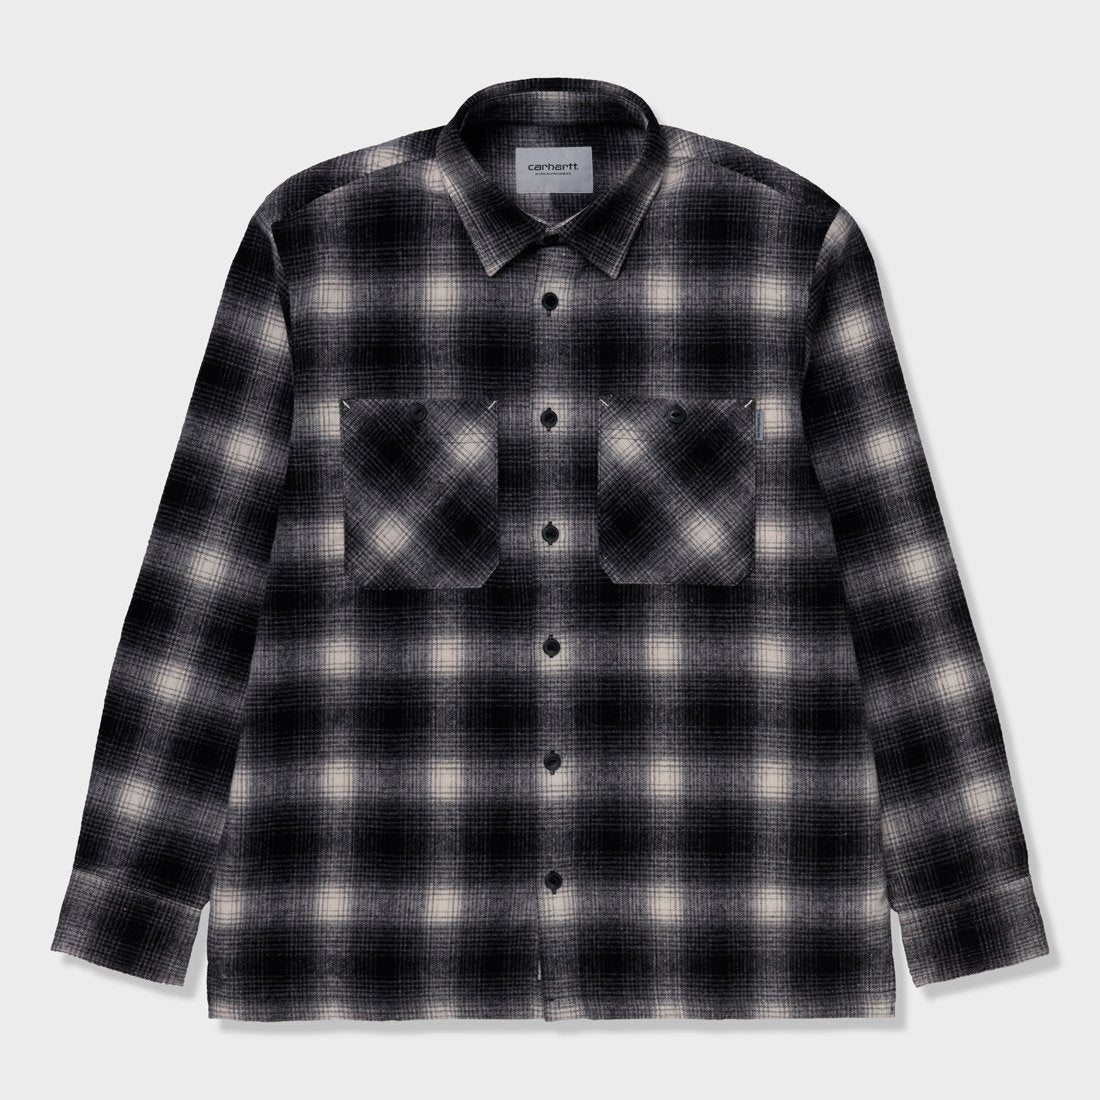 Carhartt WIP Halleck Shirt Black